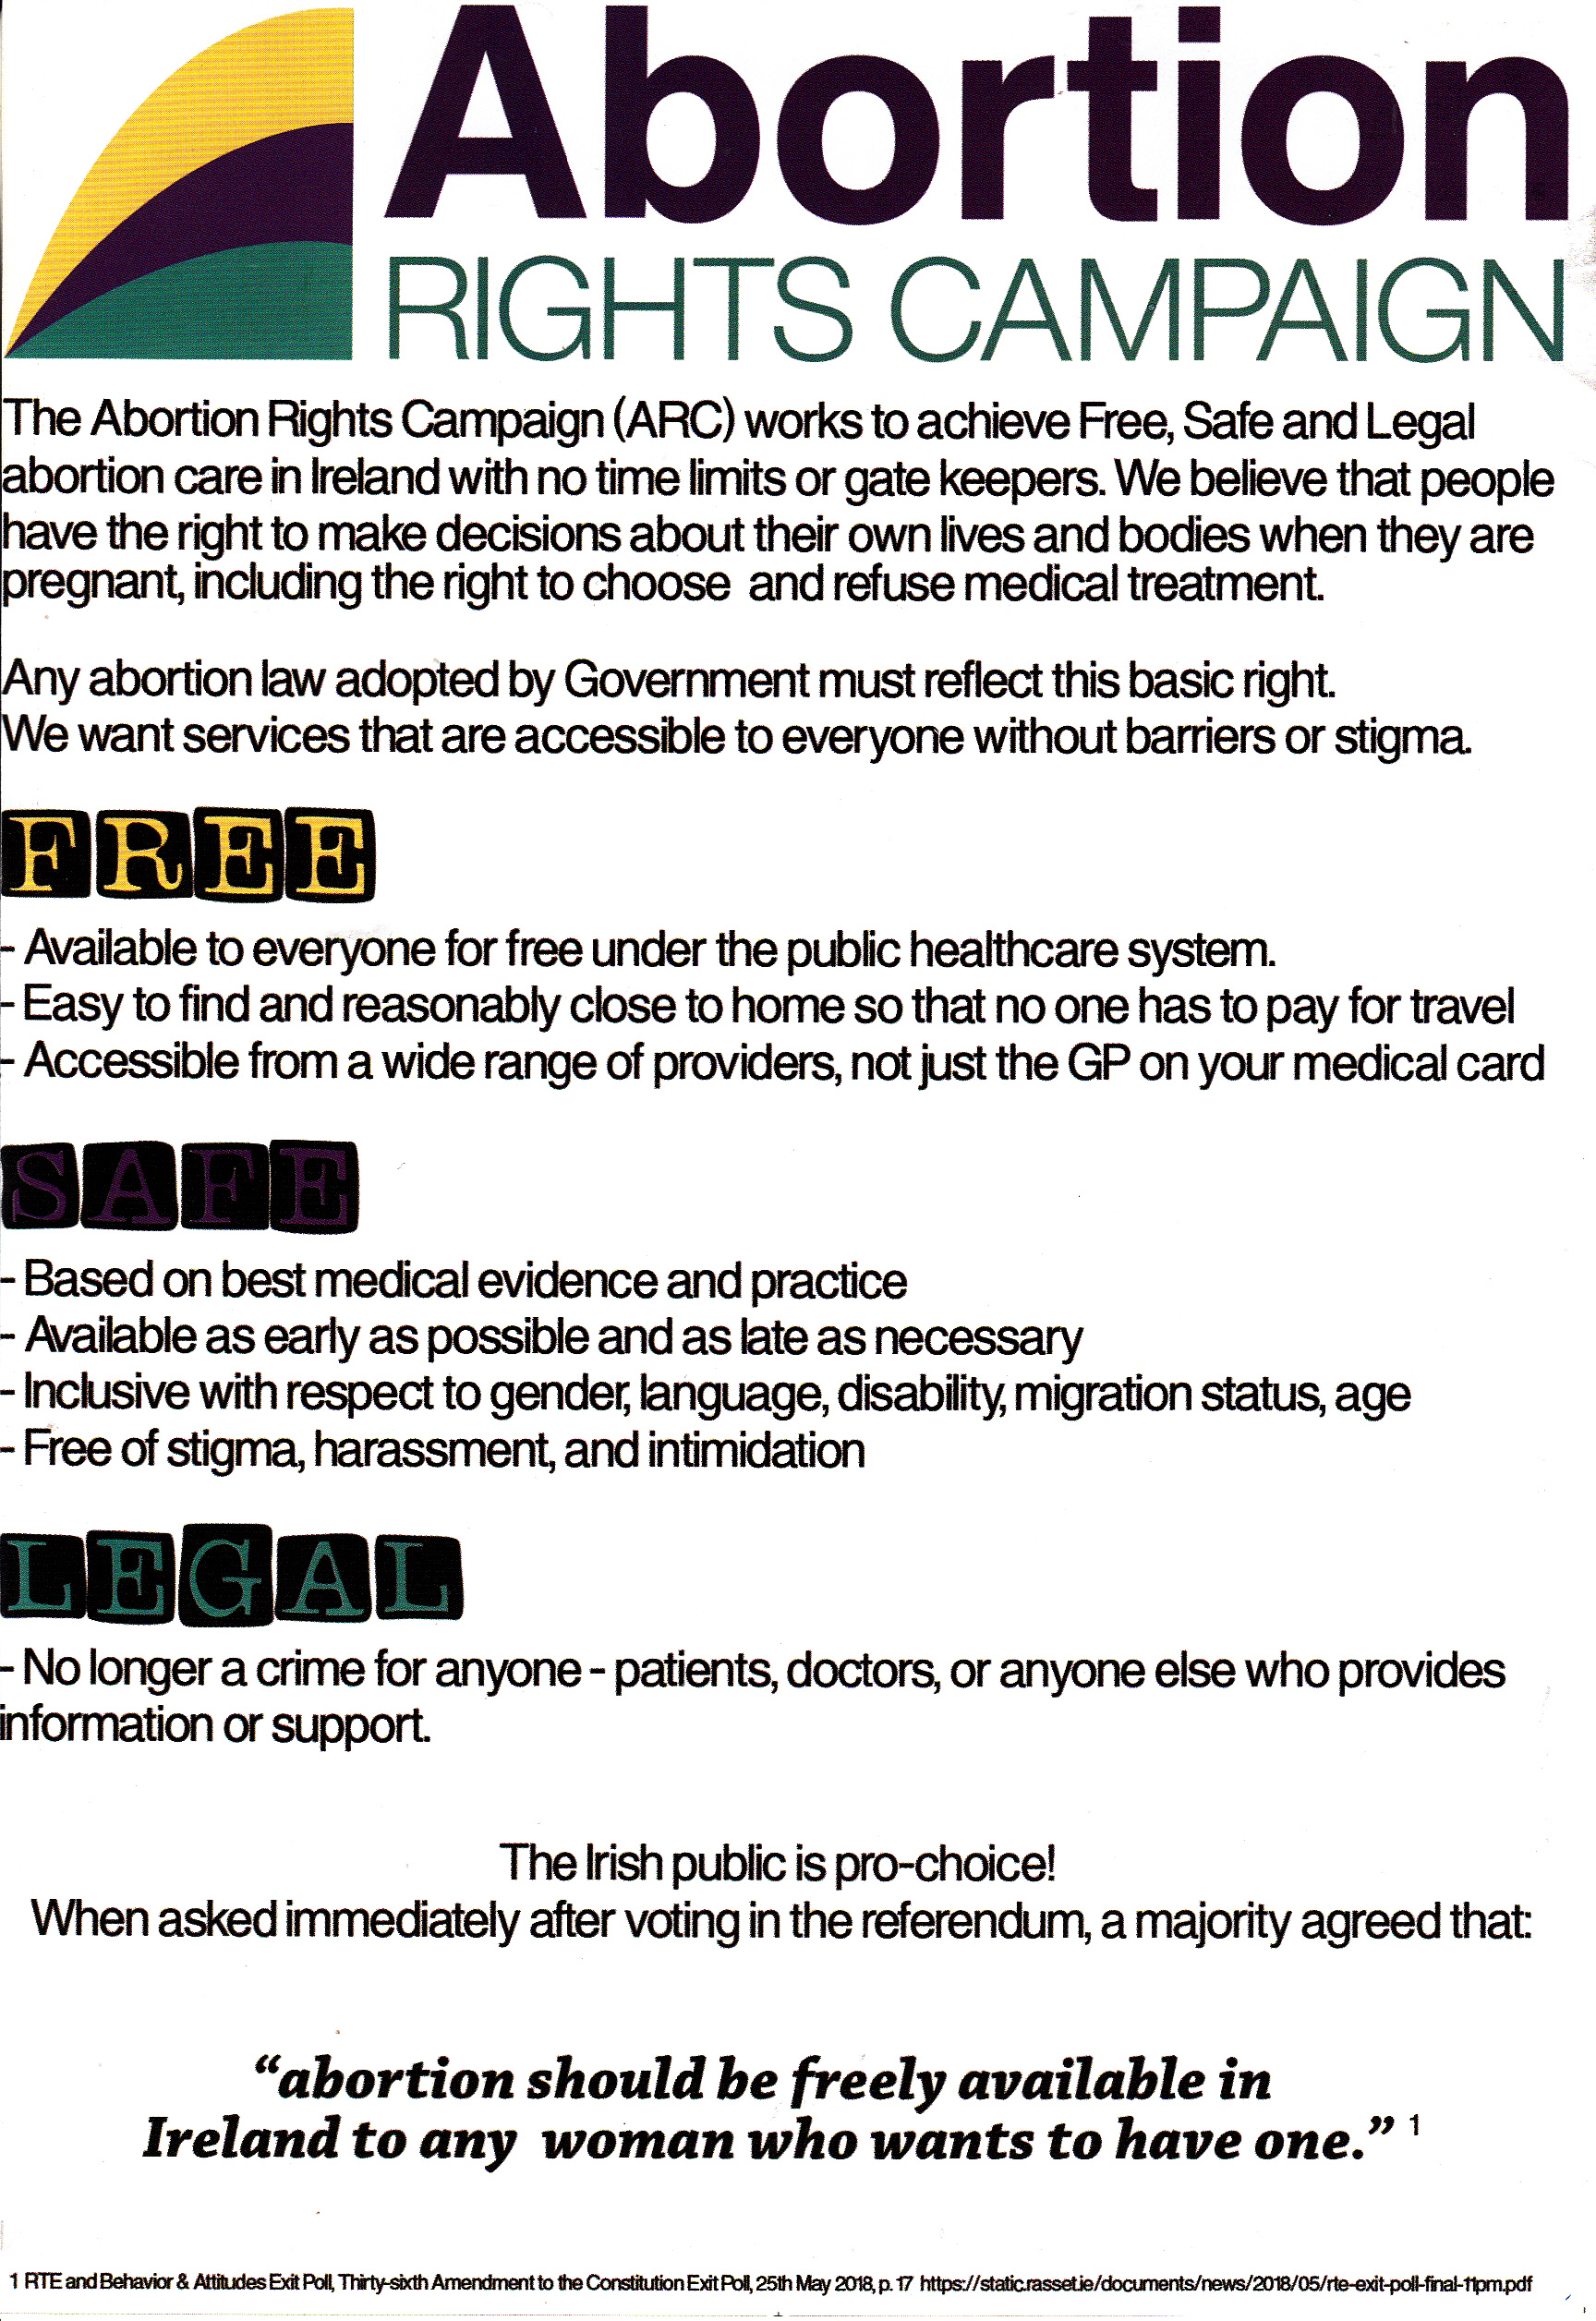 Abortion_Rights_Campaign_0002